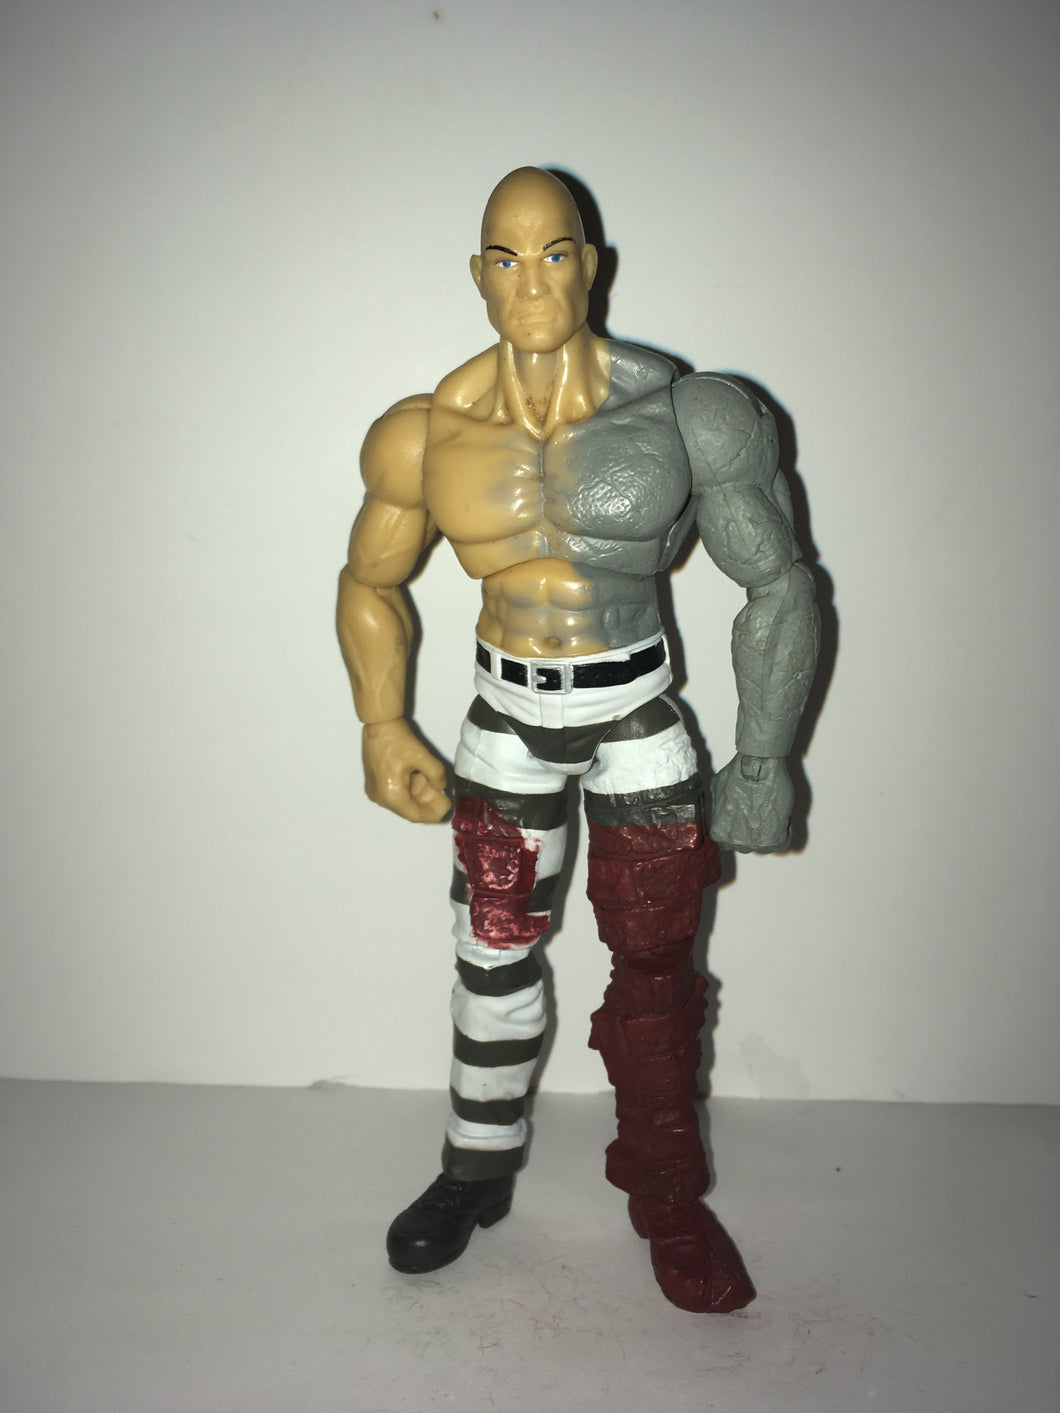 Marvel Legends  Absorbing Man (Fin Fang Foom wave no accessories) Preowned Loose Action Figure